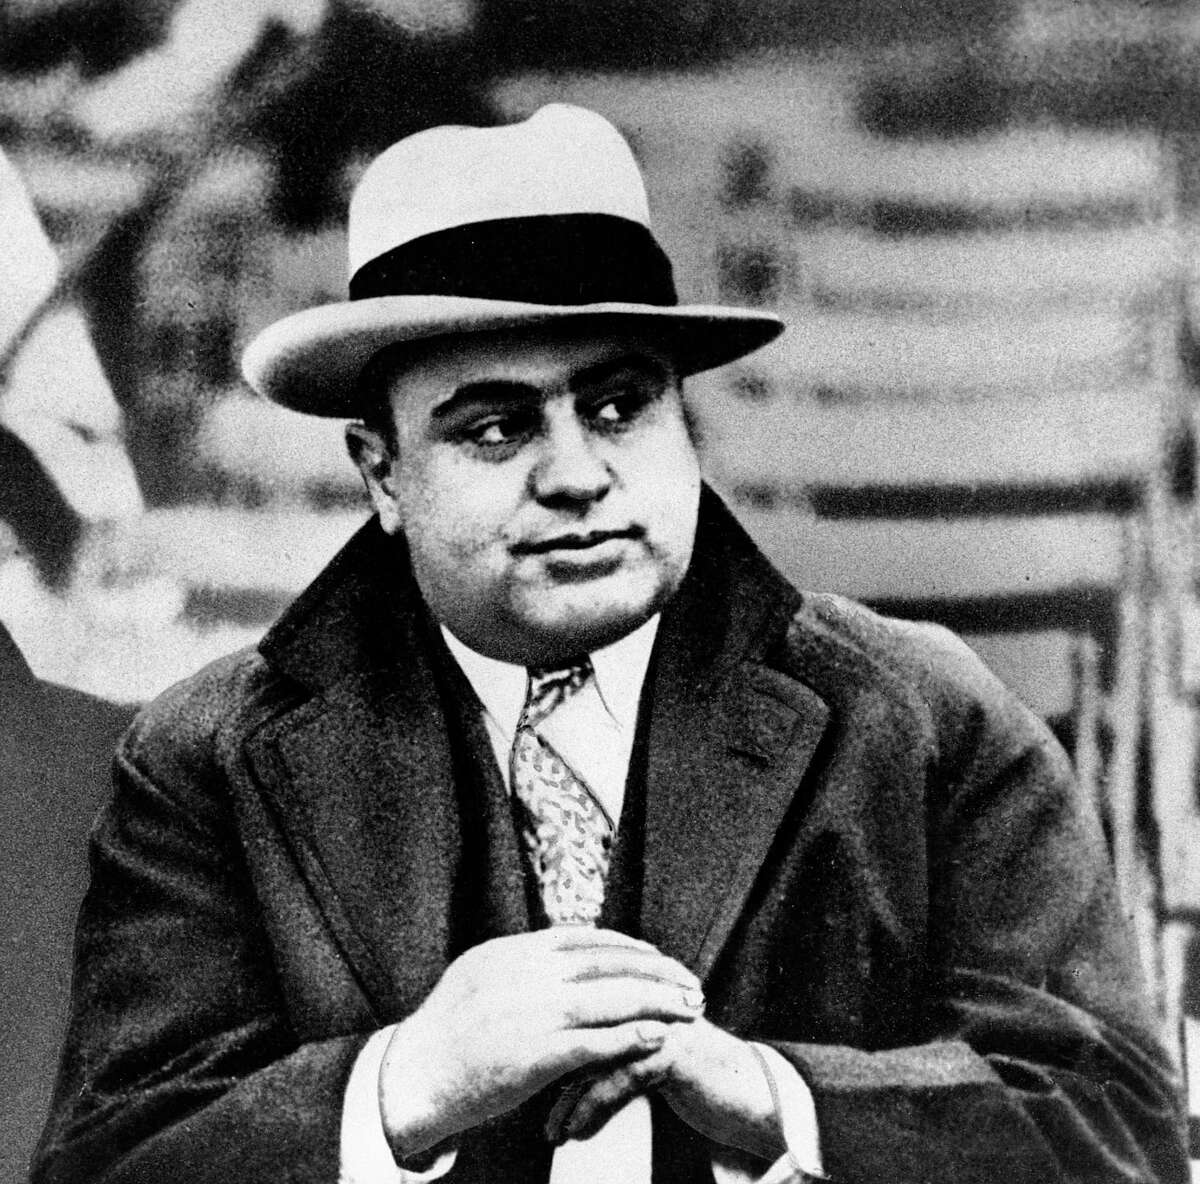 """In this Jan. 19, 1931 file photograph, Chicago mobster Al Capone is seen at a football game in Chicago. Artifacts connected to some of the nation's most notorious gangsters are being auctioned this weekend. A handwritten musical composition by Al Capone, a letter written by a jailed John Gotti asking someone to """"keep the martinis cold,"""" and jewelry that belonged to Bonnie and Clyde are among the items up for bid Saturday in the """"Gangsters, Outlaws and Lawmen"""" auction in Cambridge, Mass."""